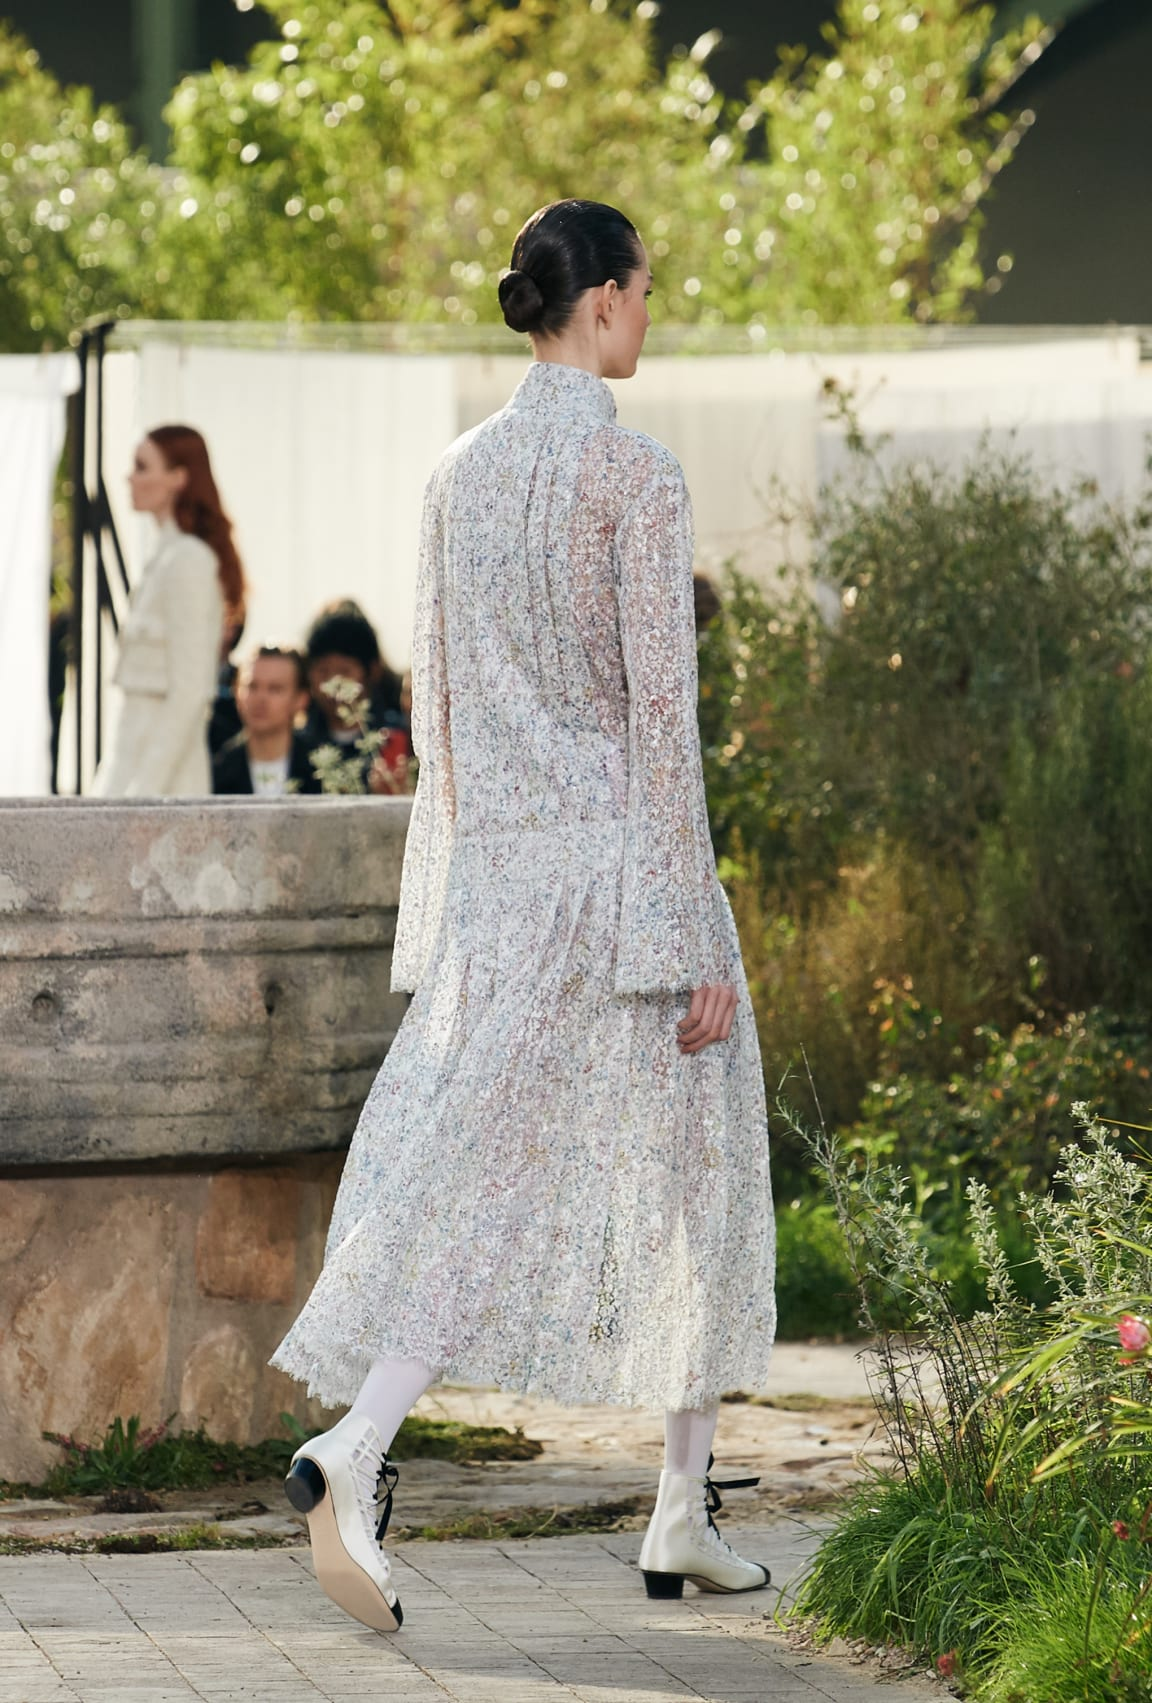 View 6 - Look 25 - Spring-Summer 2020 Haute Couture - see full sized version